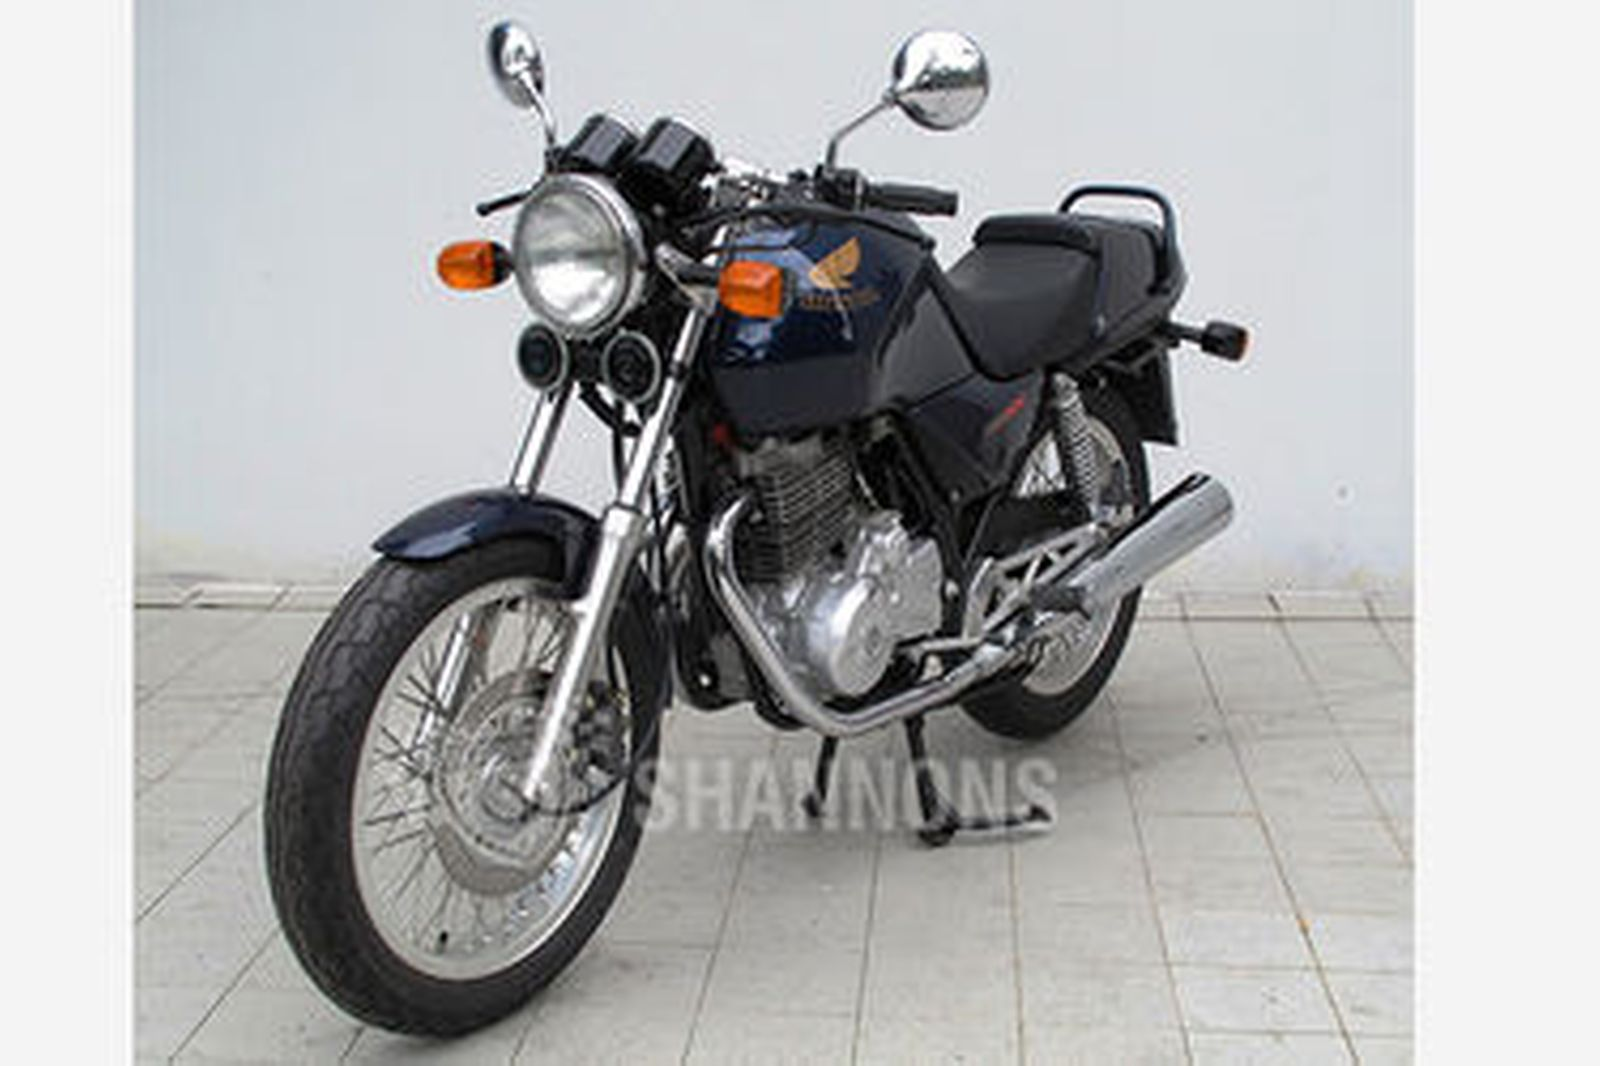 Honda Xbr 500 Wiring Diagram Cb 50 Motorcycles India Xbr500 Sold Motorcycle Auctions Lot Af Shannons On 2005 Saturn Relay Radio